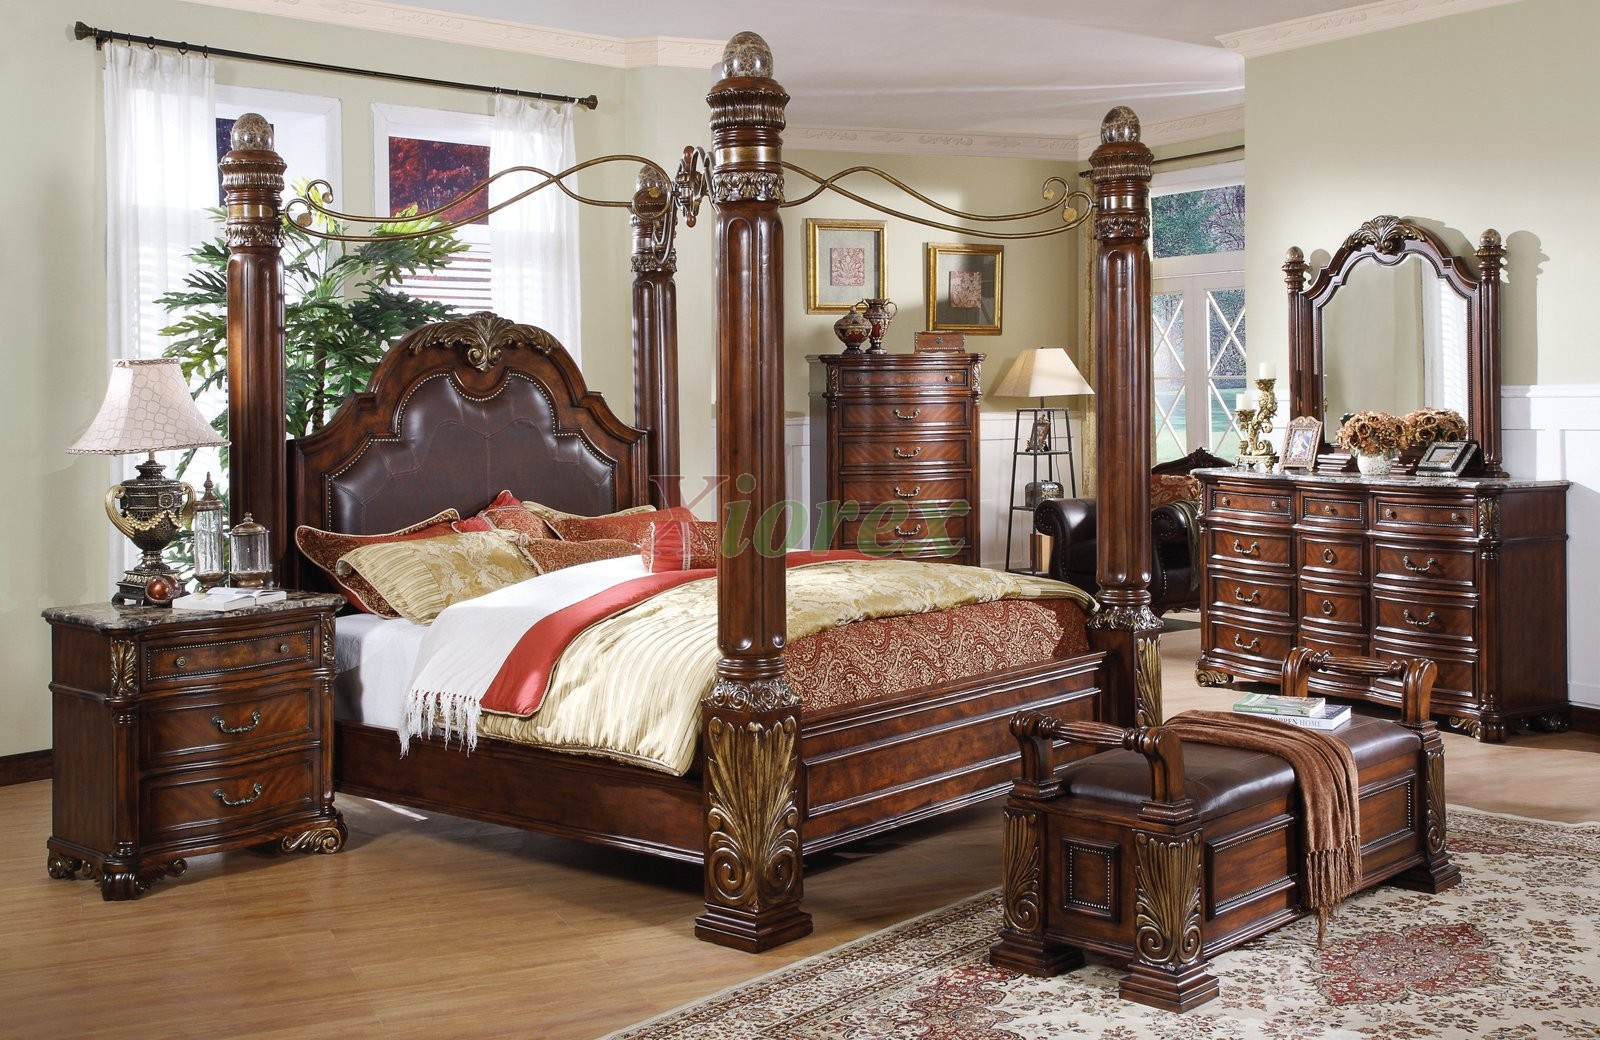 Canopy Bed Sets Bedroom Furniture Sets w Poster Canopy Beds 100 ...